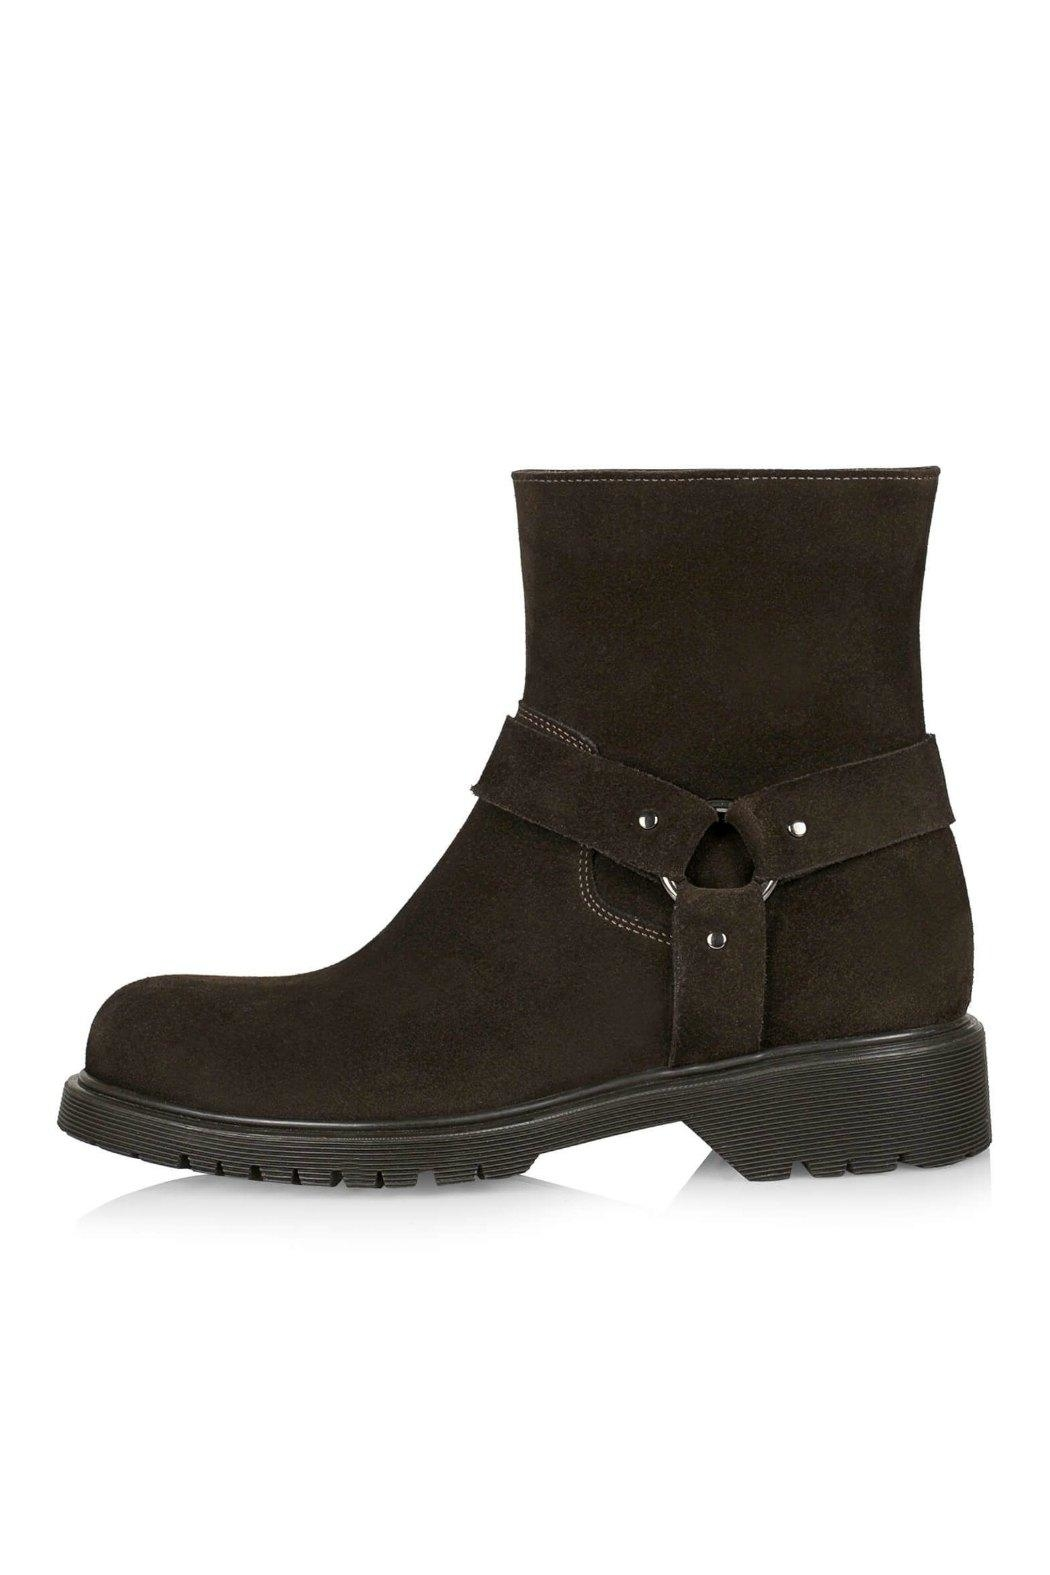 La Canadienne Harris Ankle Boot - Main Image